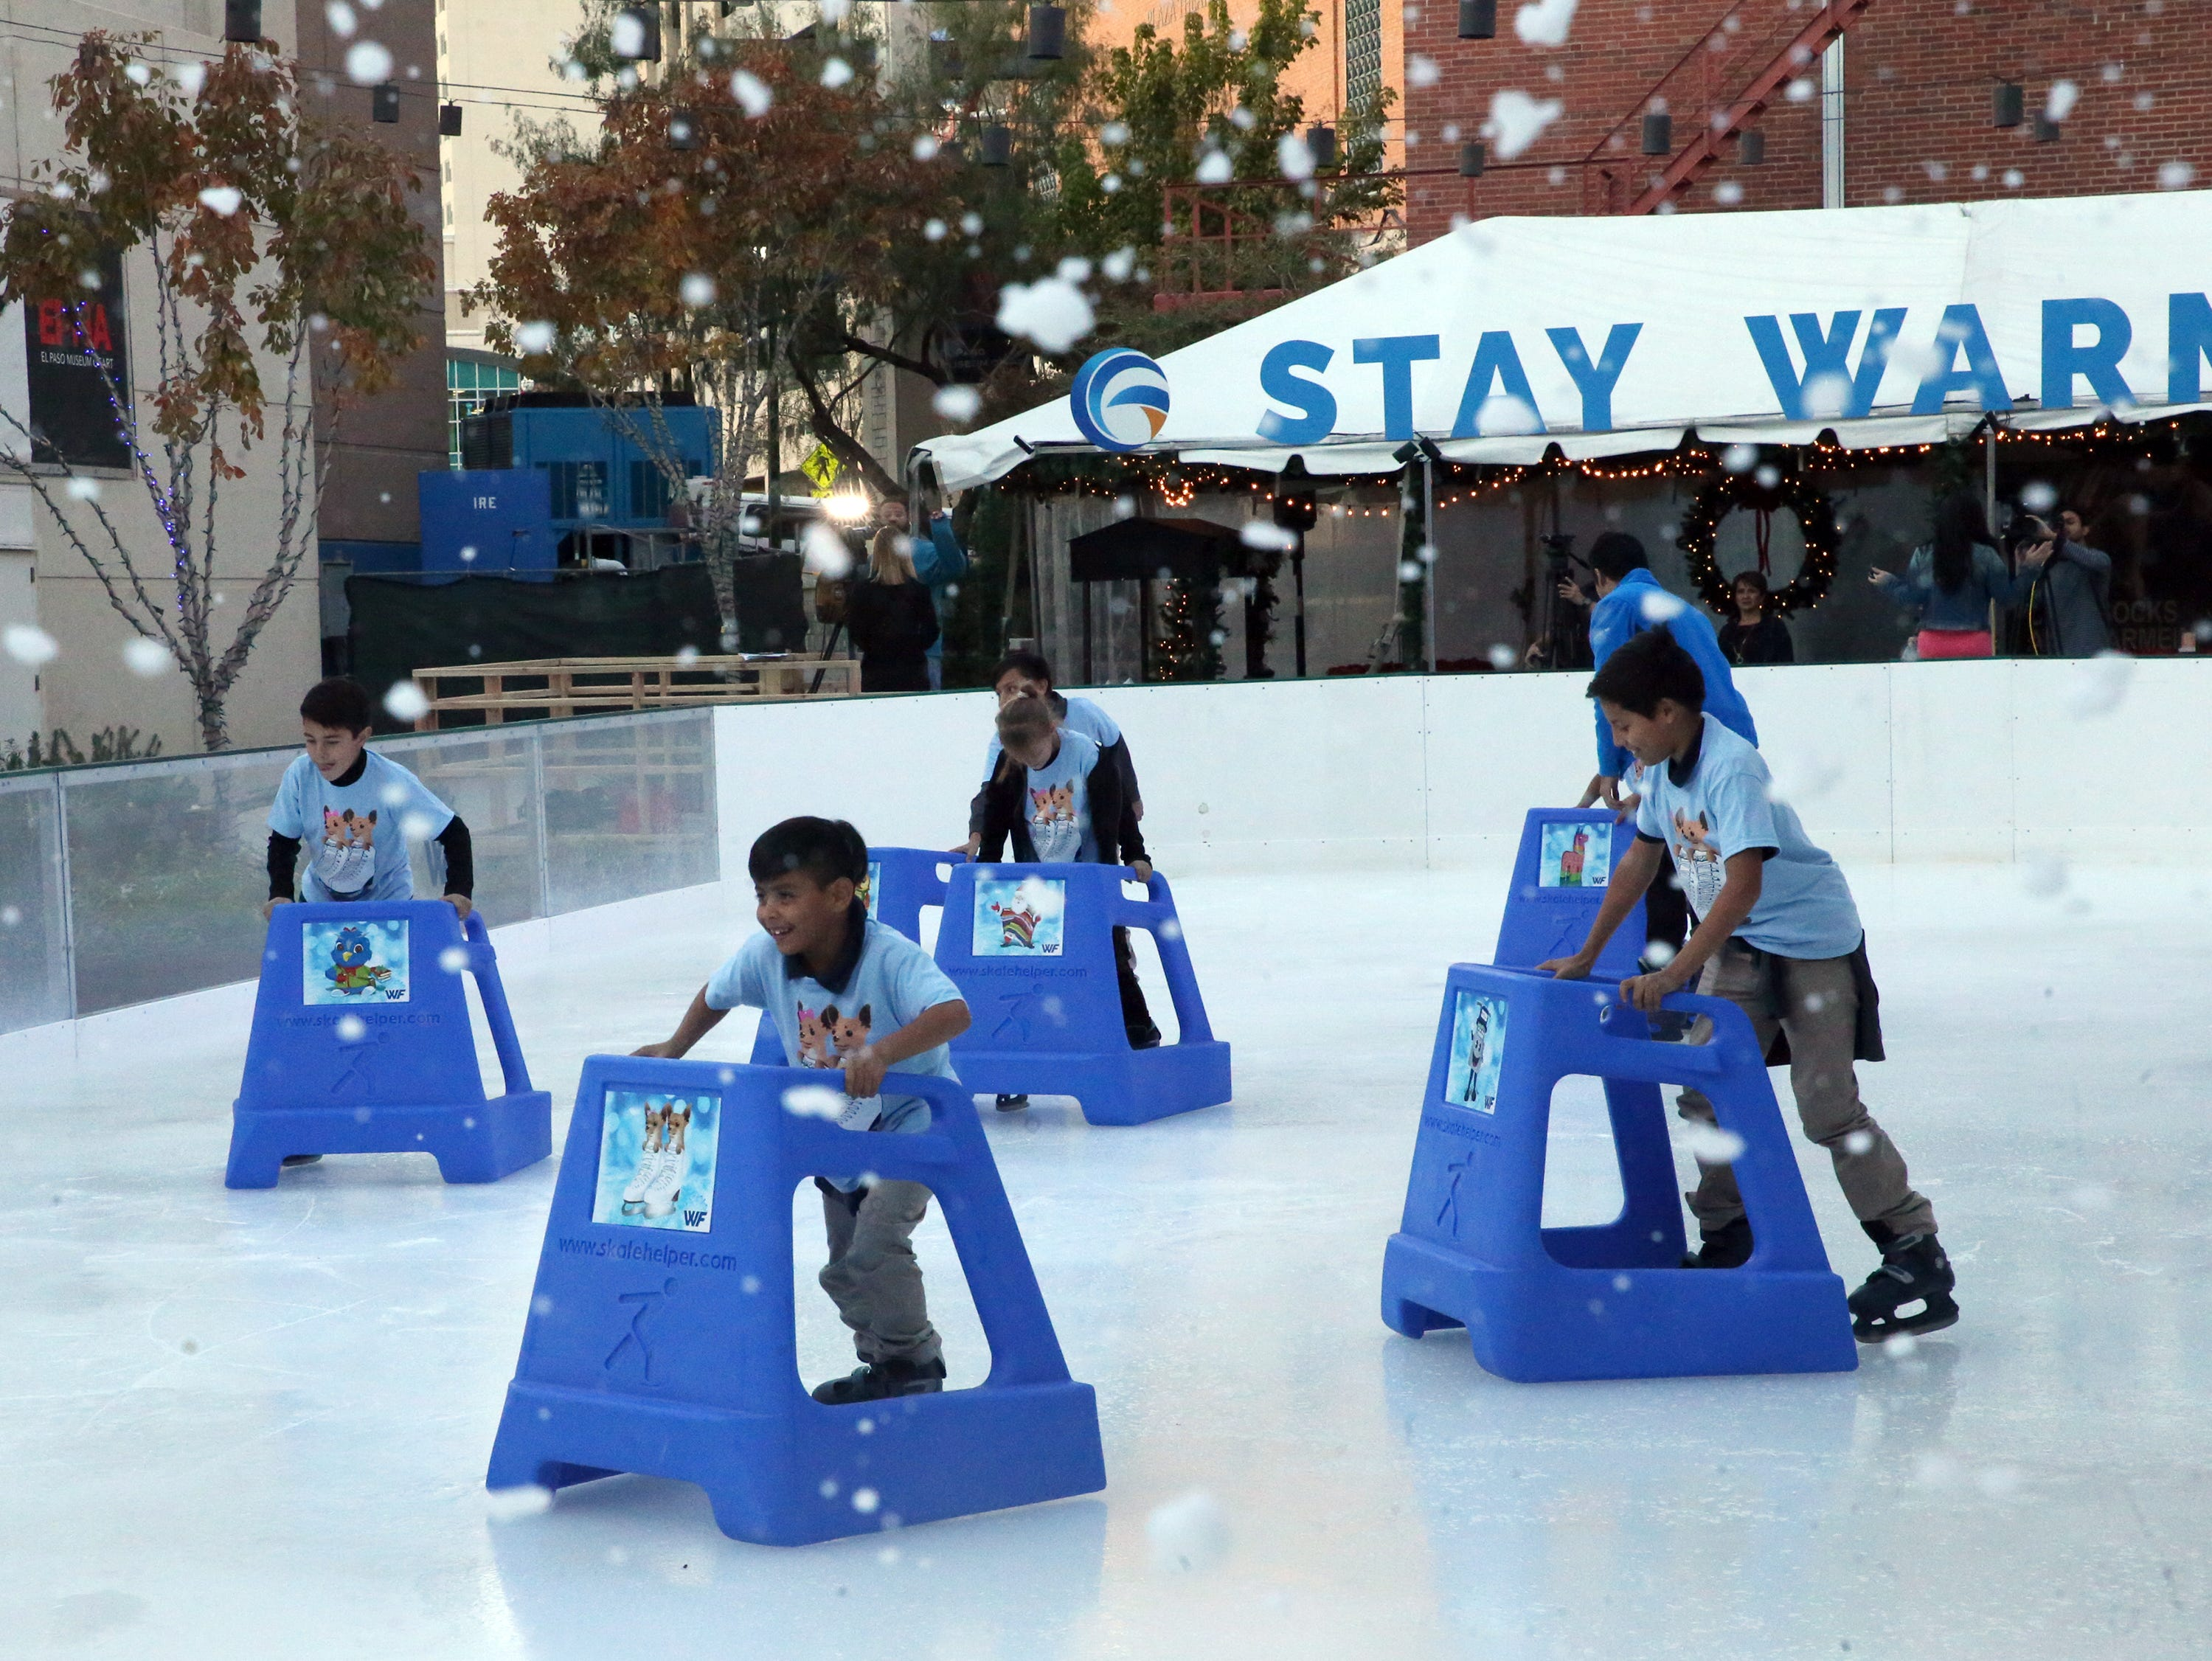 Kids from the Boys and Girls Clubs of El Paso are the first to get onto the ice rink during a 'Break The Ice' party and press conference to kick off WinterFest 2018 Friday in downtown El Paso.